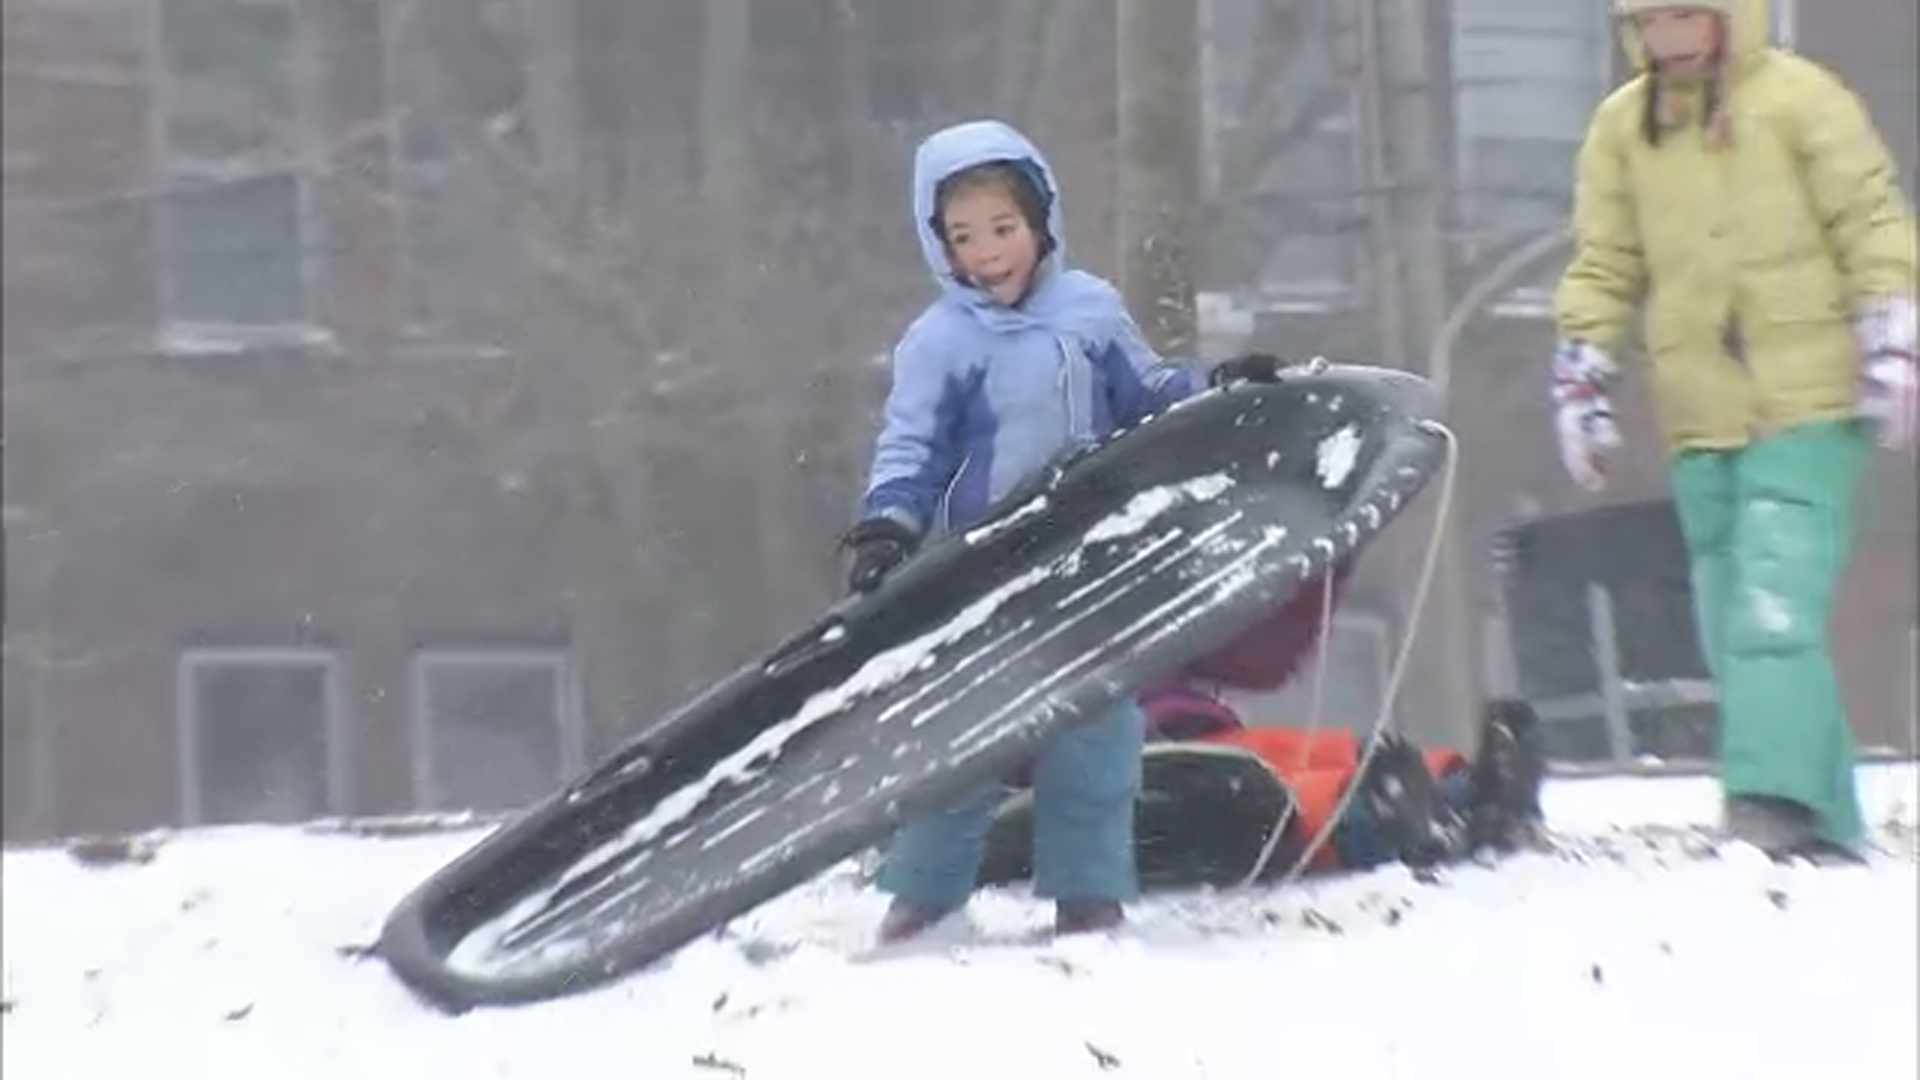 "<div class=""meta image-caption""><div class=""origin-logo origin-image wpvi""><span>WPVI</span></div><span class=""caption-text"">Sledding is hard work - West Philadelphia</span></div>"